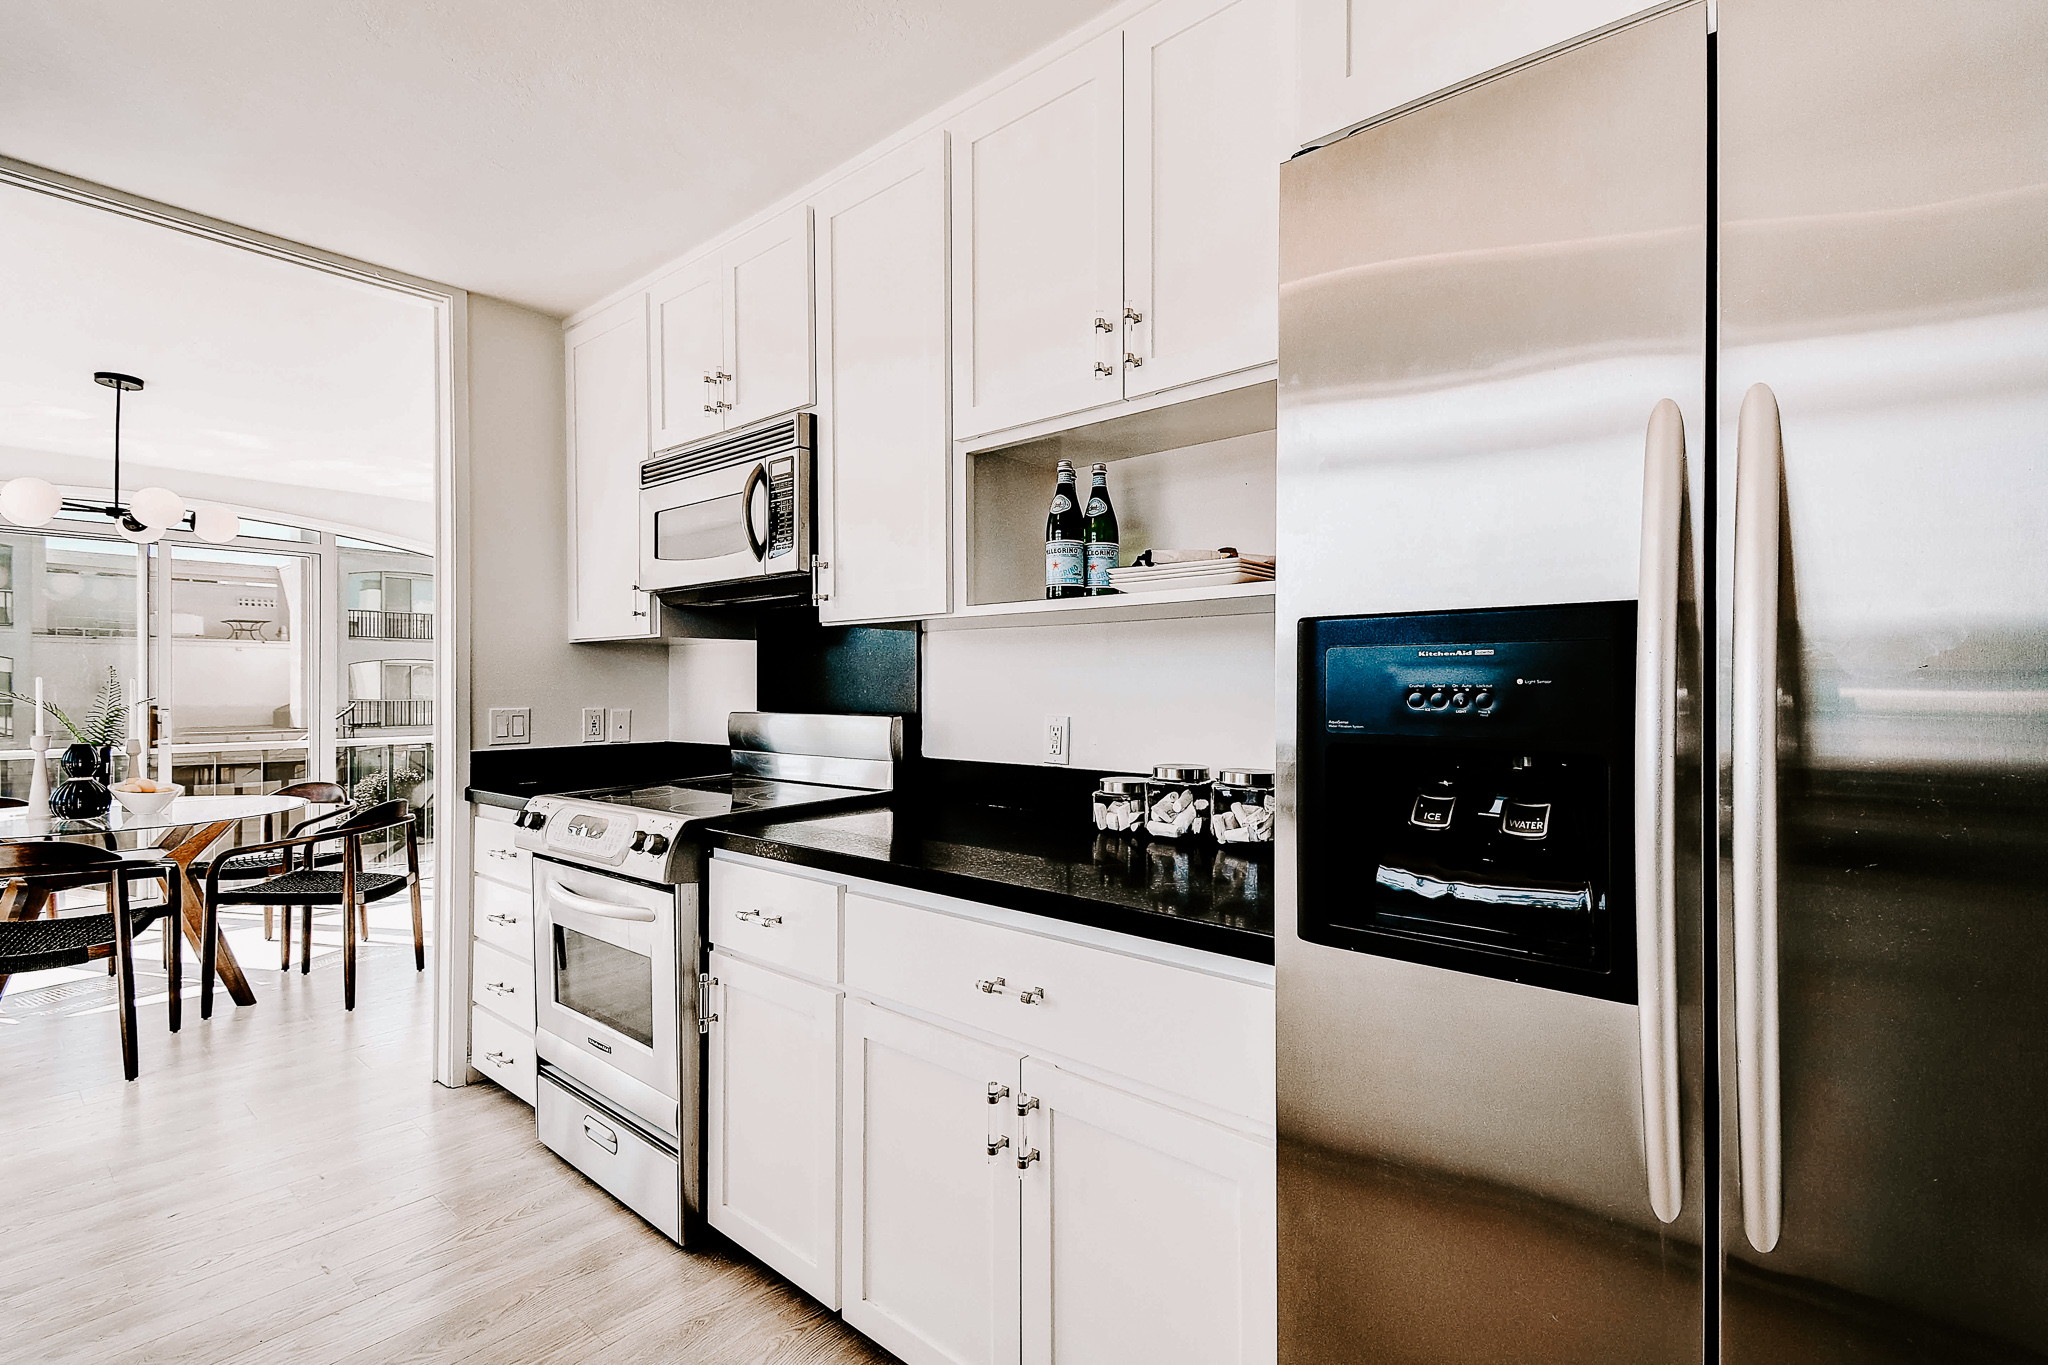 3223 Shelter Bay Avenue-6 Mill Valley Top Realtor - Allie Fornesi on Own Marin County's #1 Real Estate Team.jpg